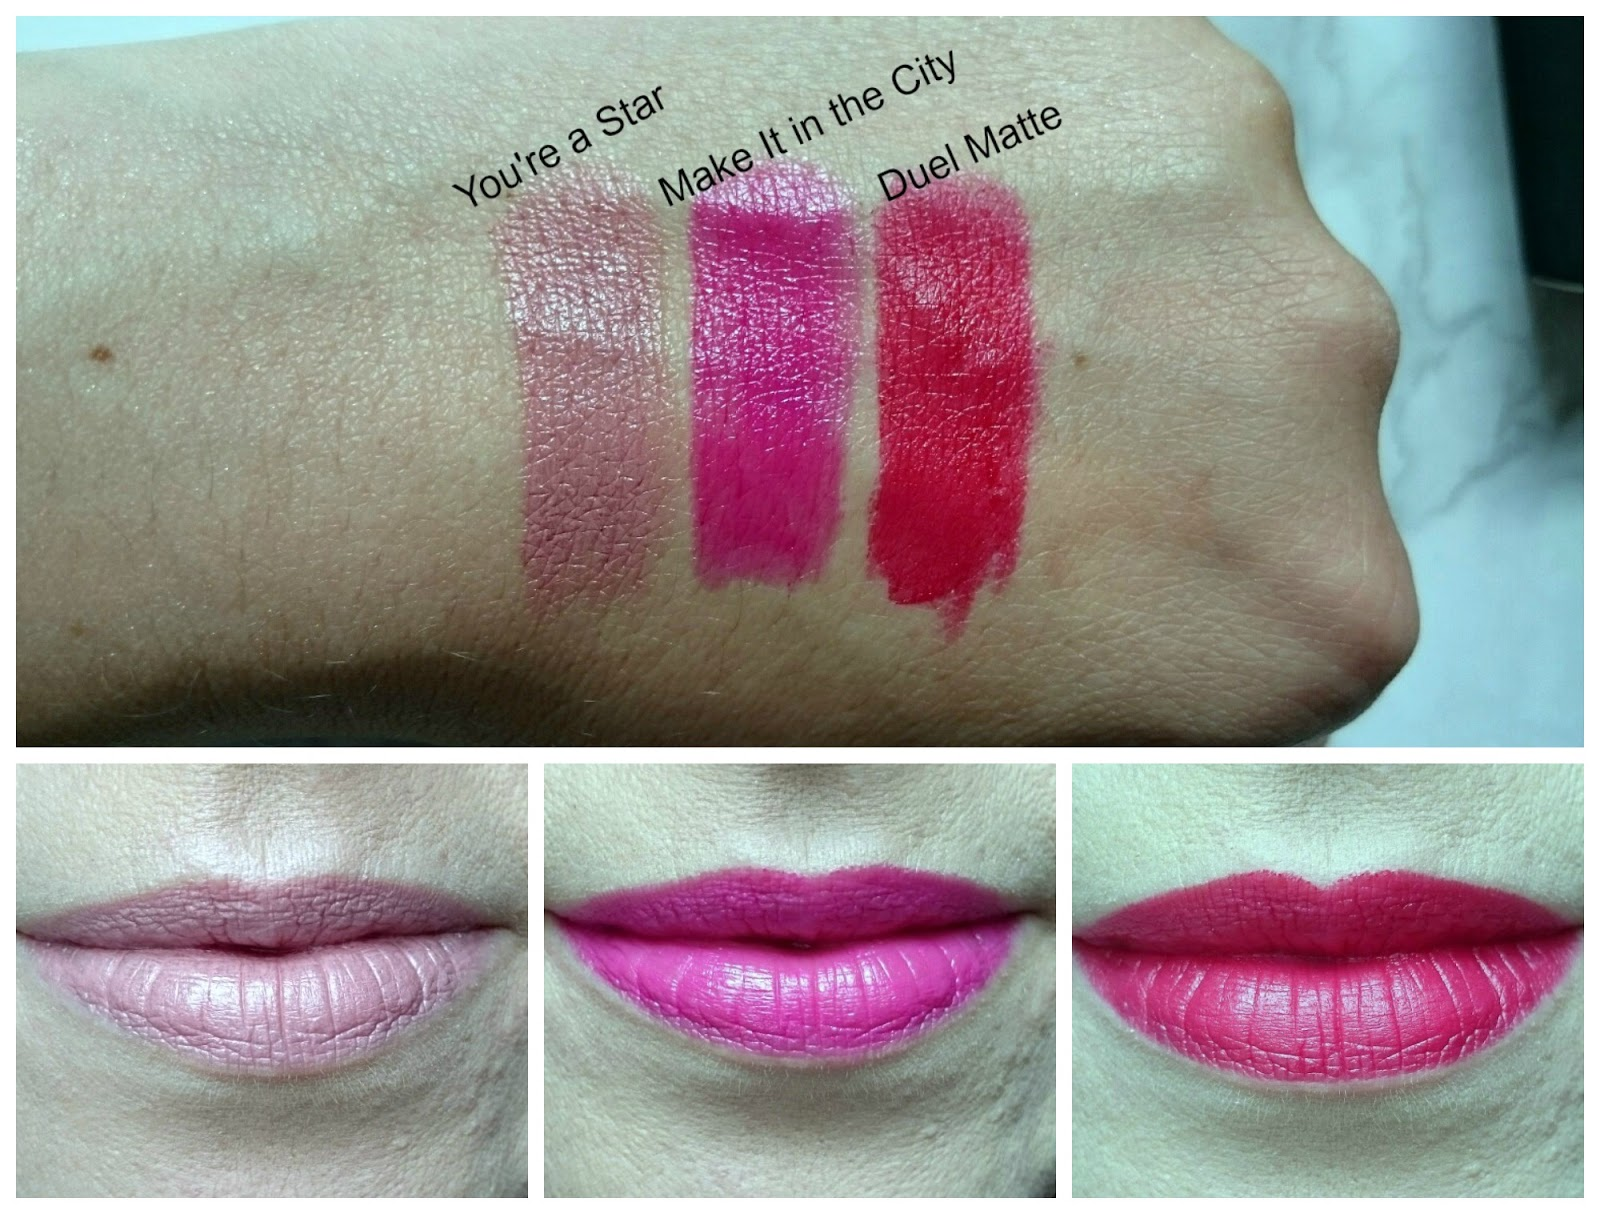 Makeup Revolution Iconic Pro Lipstick swatches